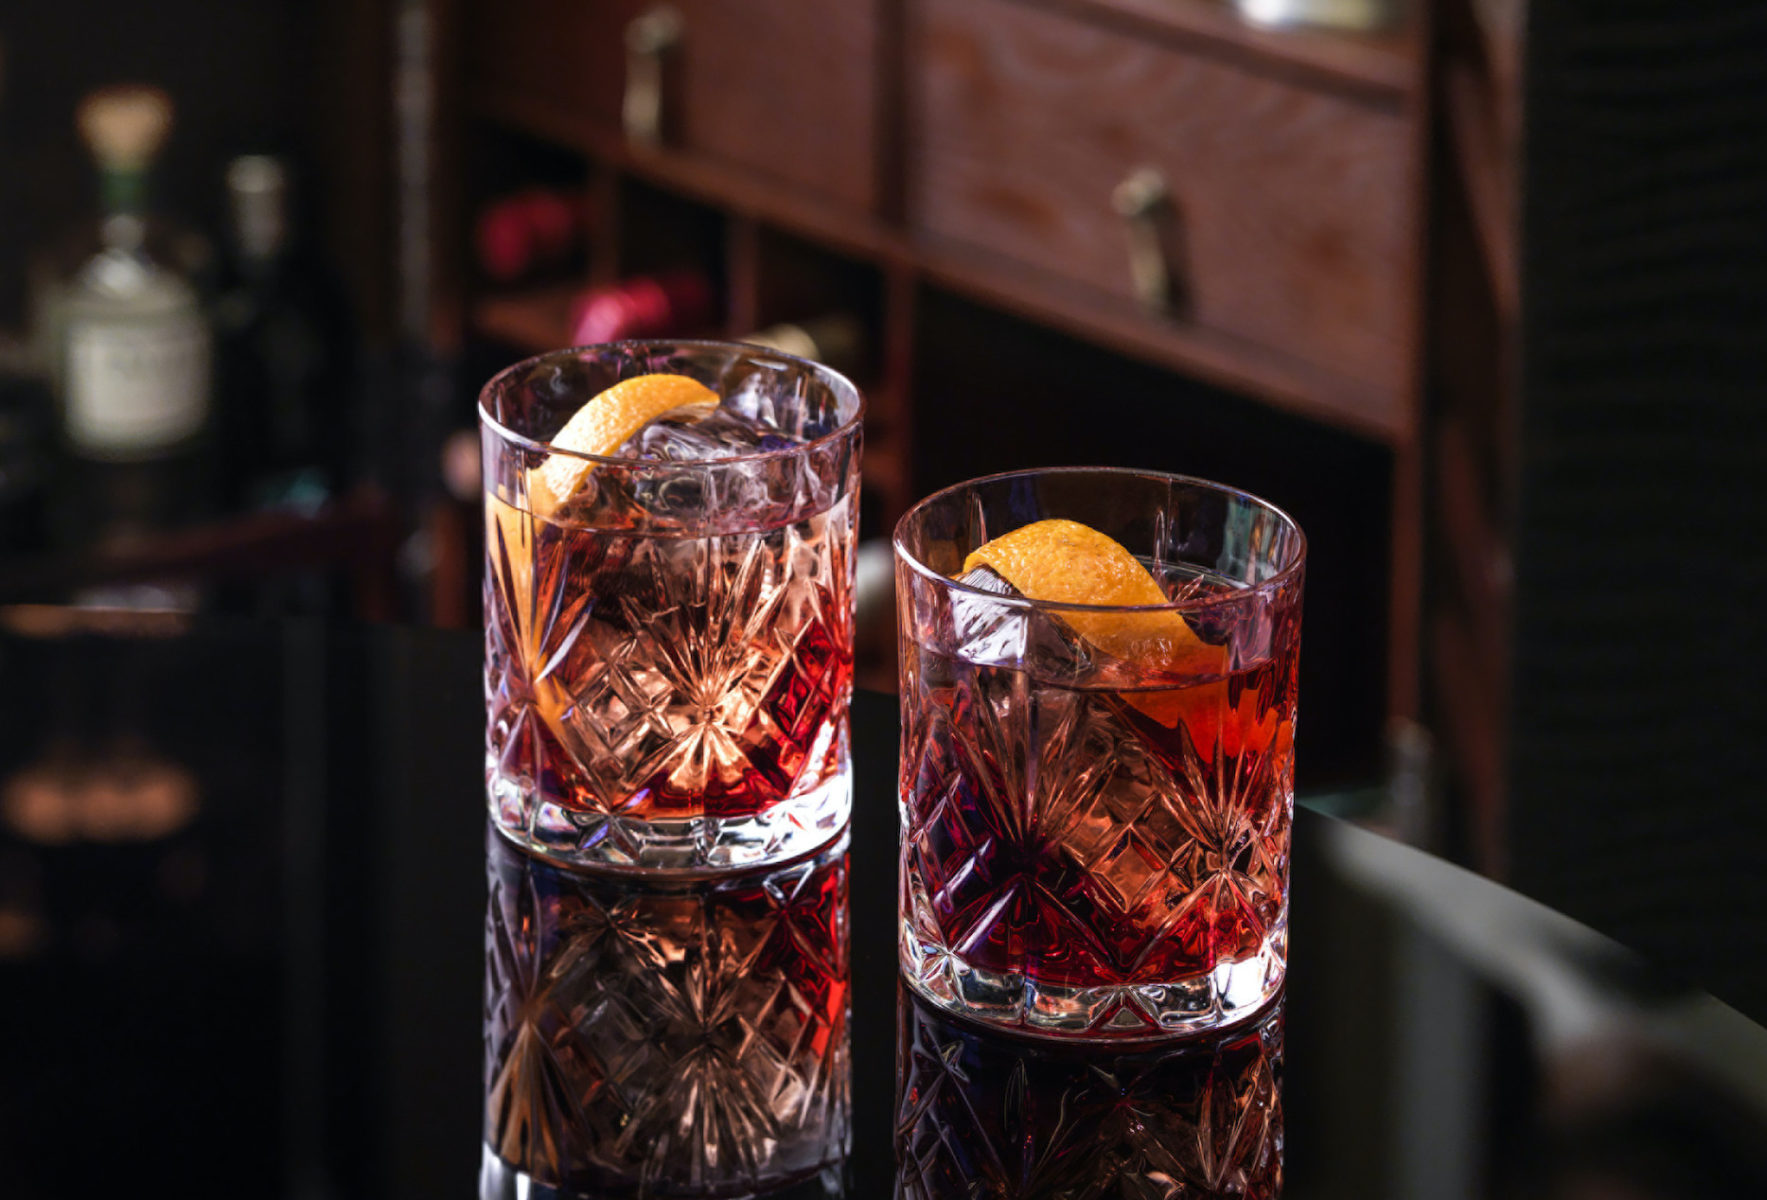 Two glasses with a Negroni cocktail